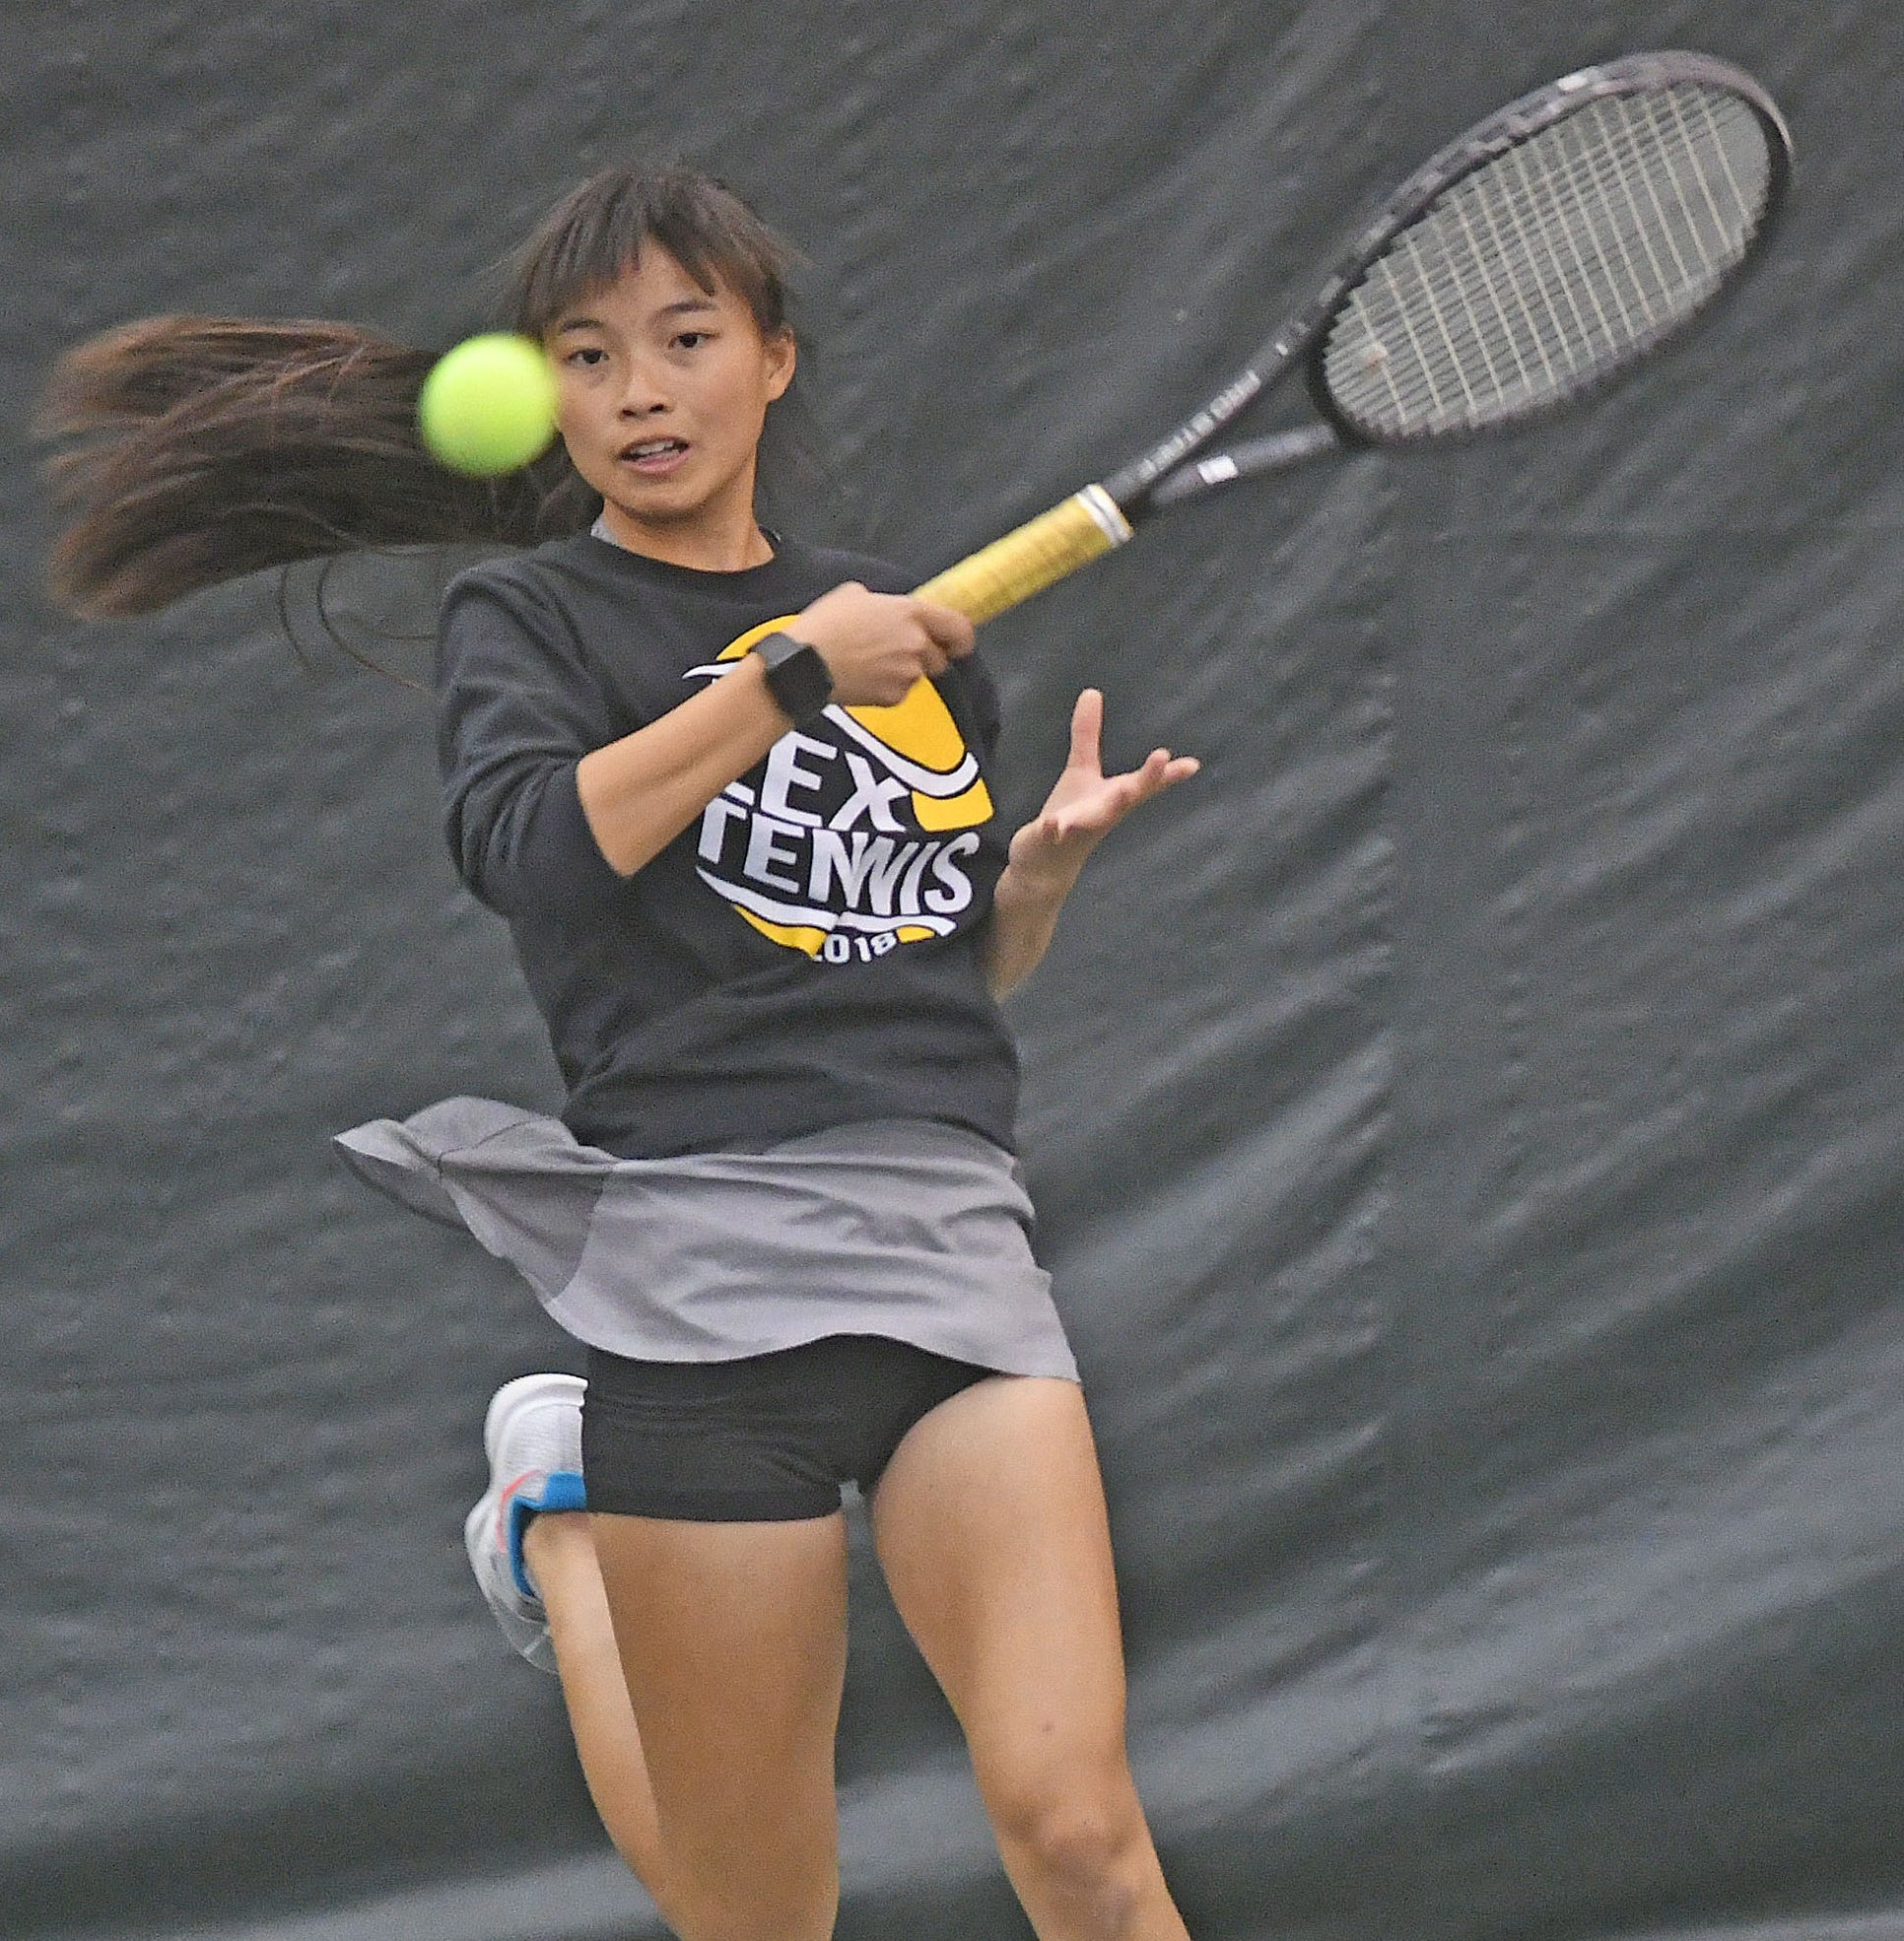 So close (again): Lex girls fall in bid for Final Four in tennis